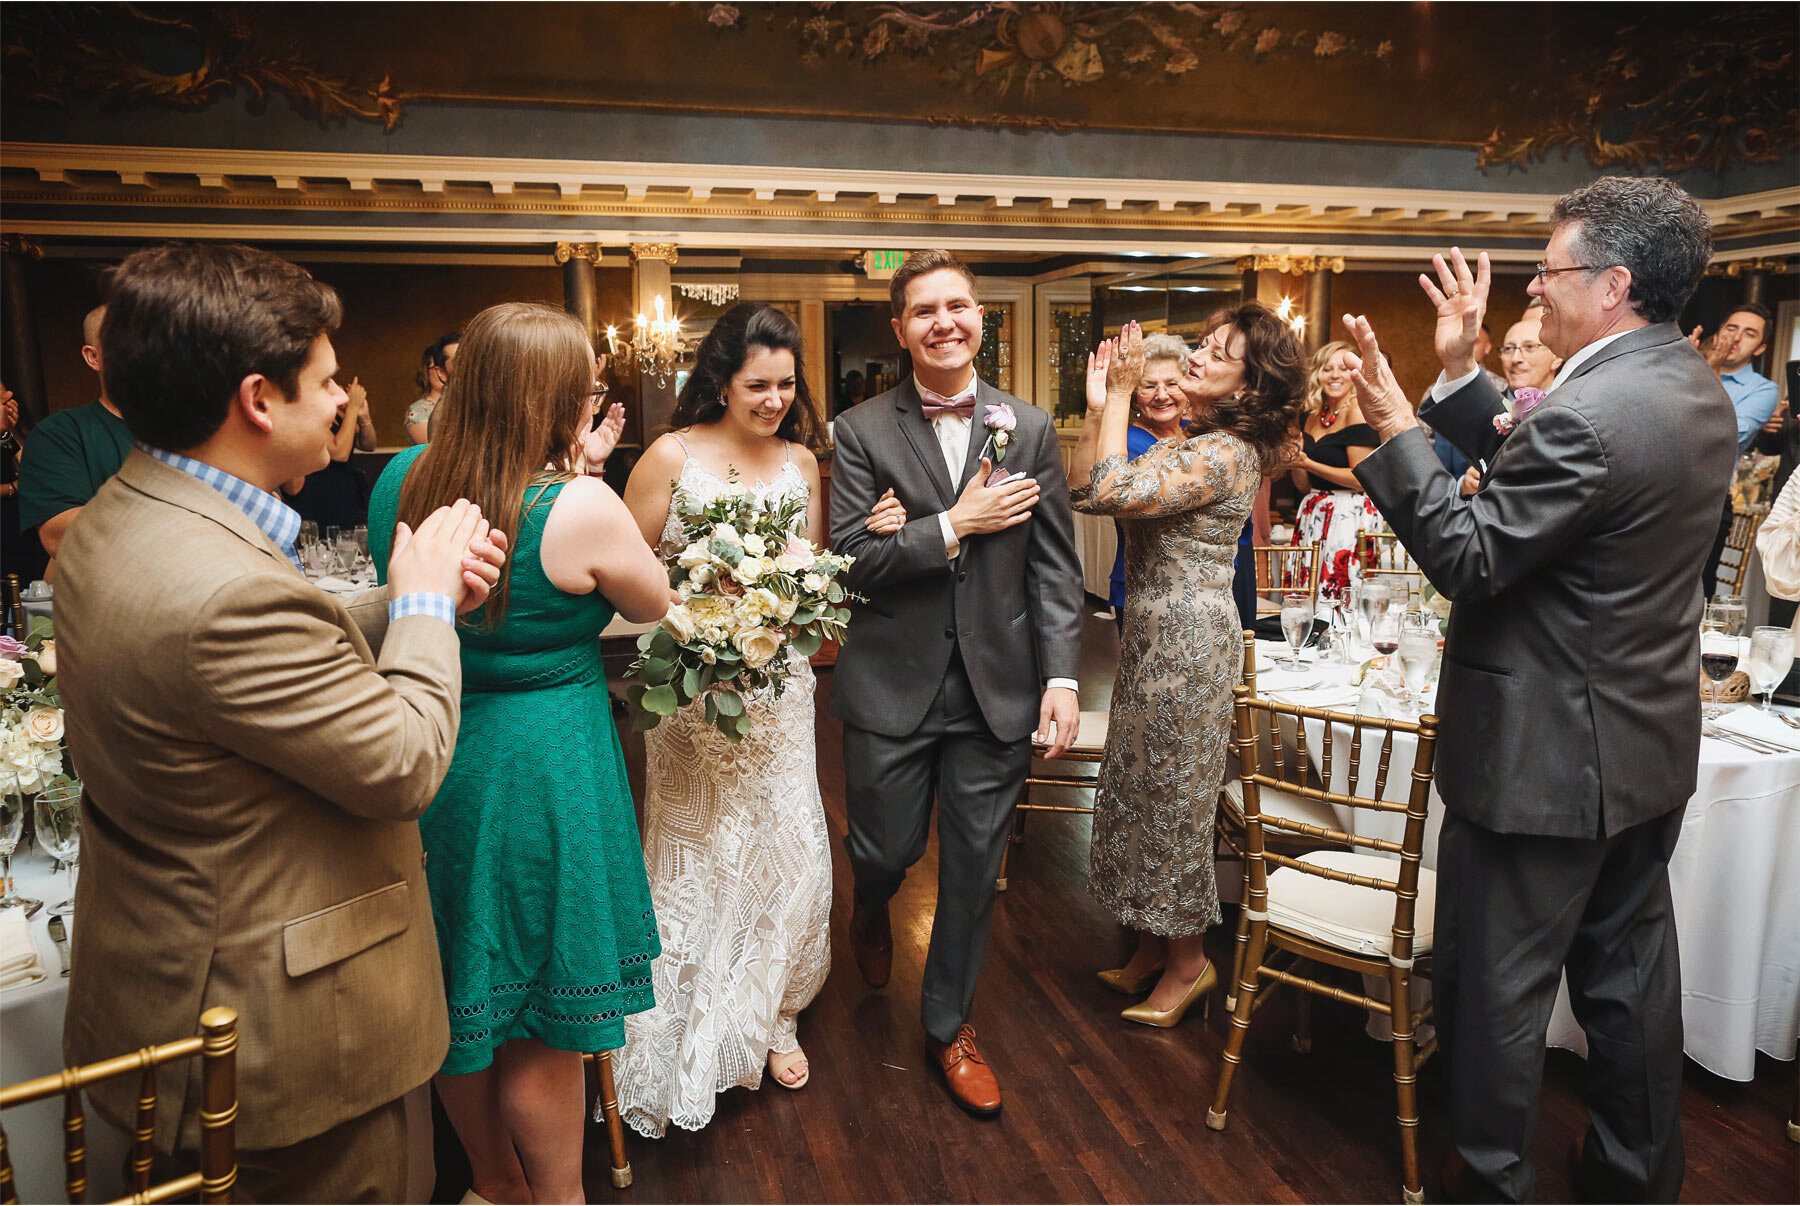 11-Wedding-by-Vick-Photography-Minneapolis-Minnesota-Semple-Mansion-Historic-Venue-Reception-Bride-Groom-Cheering-Kaitlyn-and-Nate.jpg